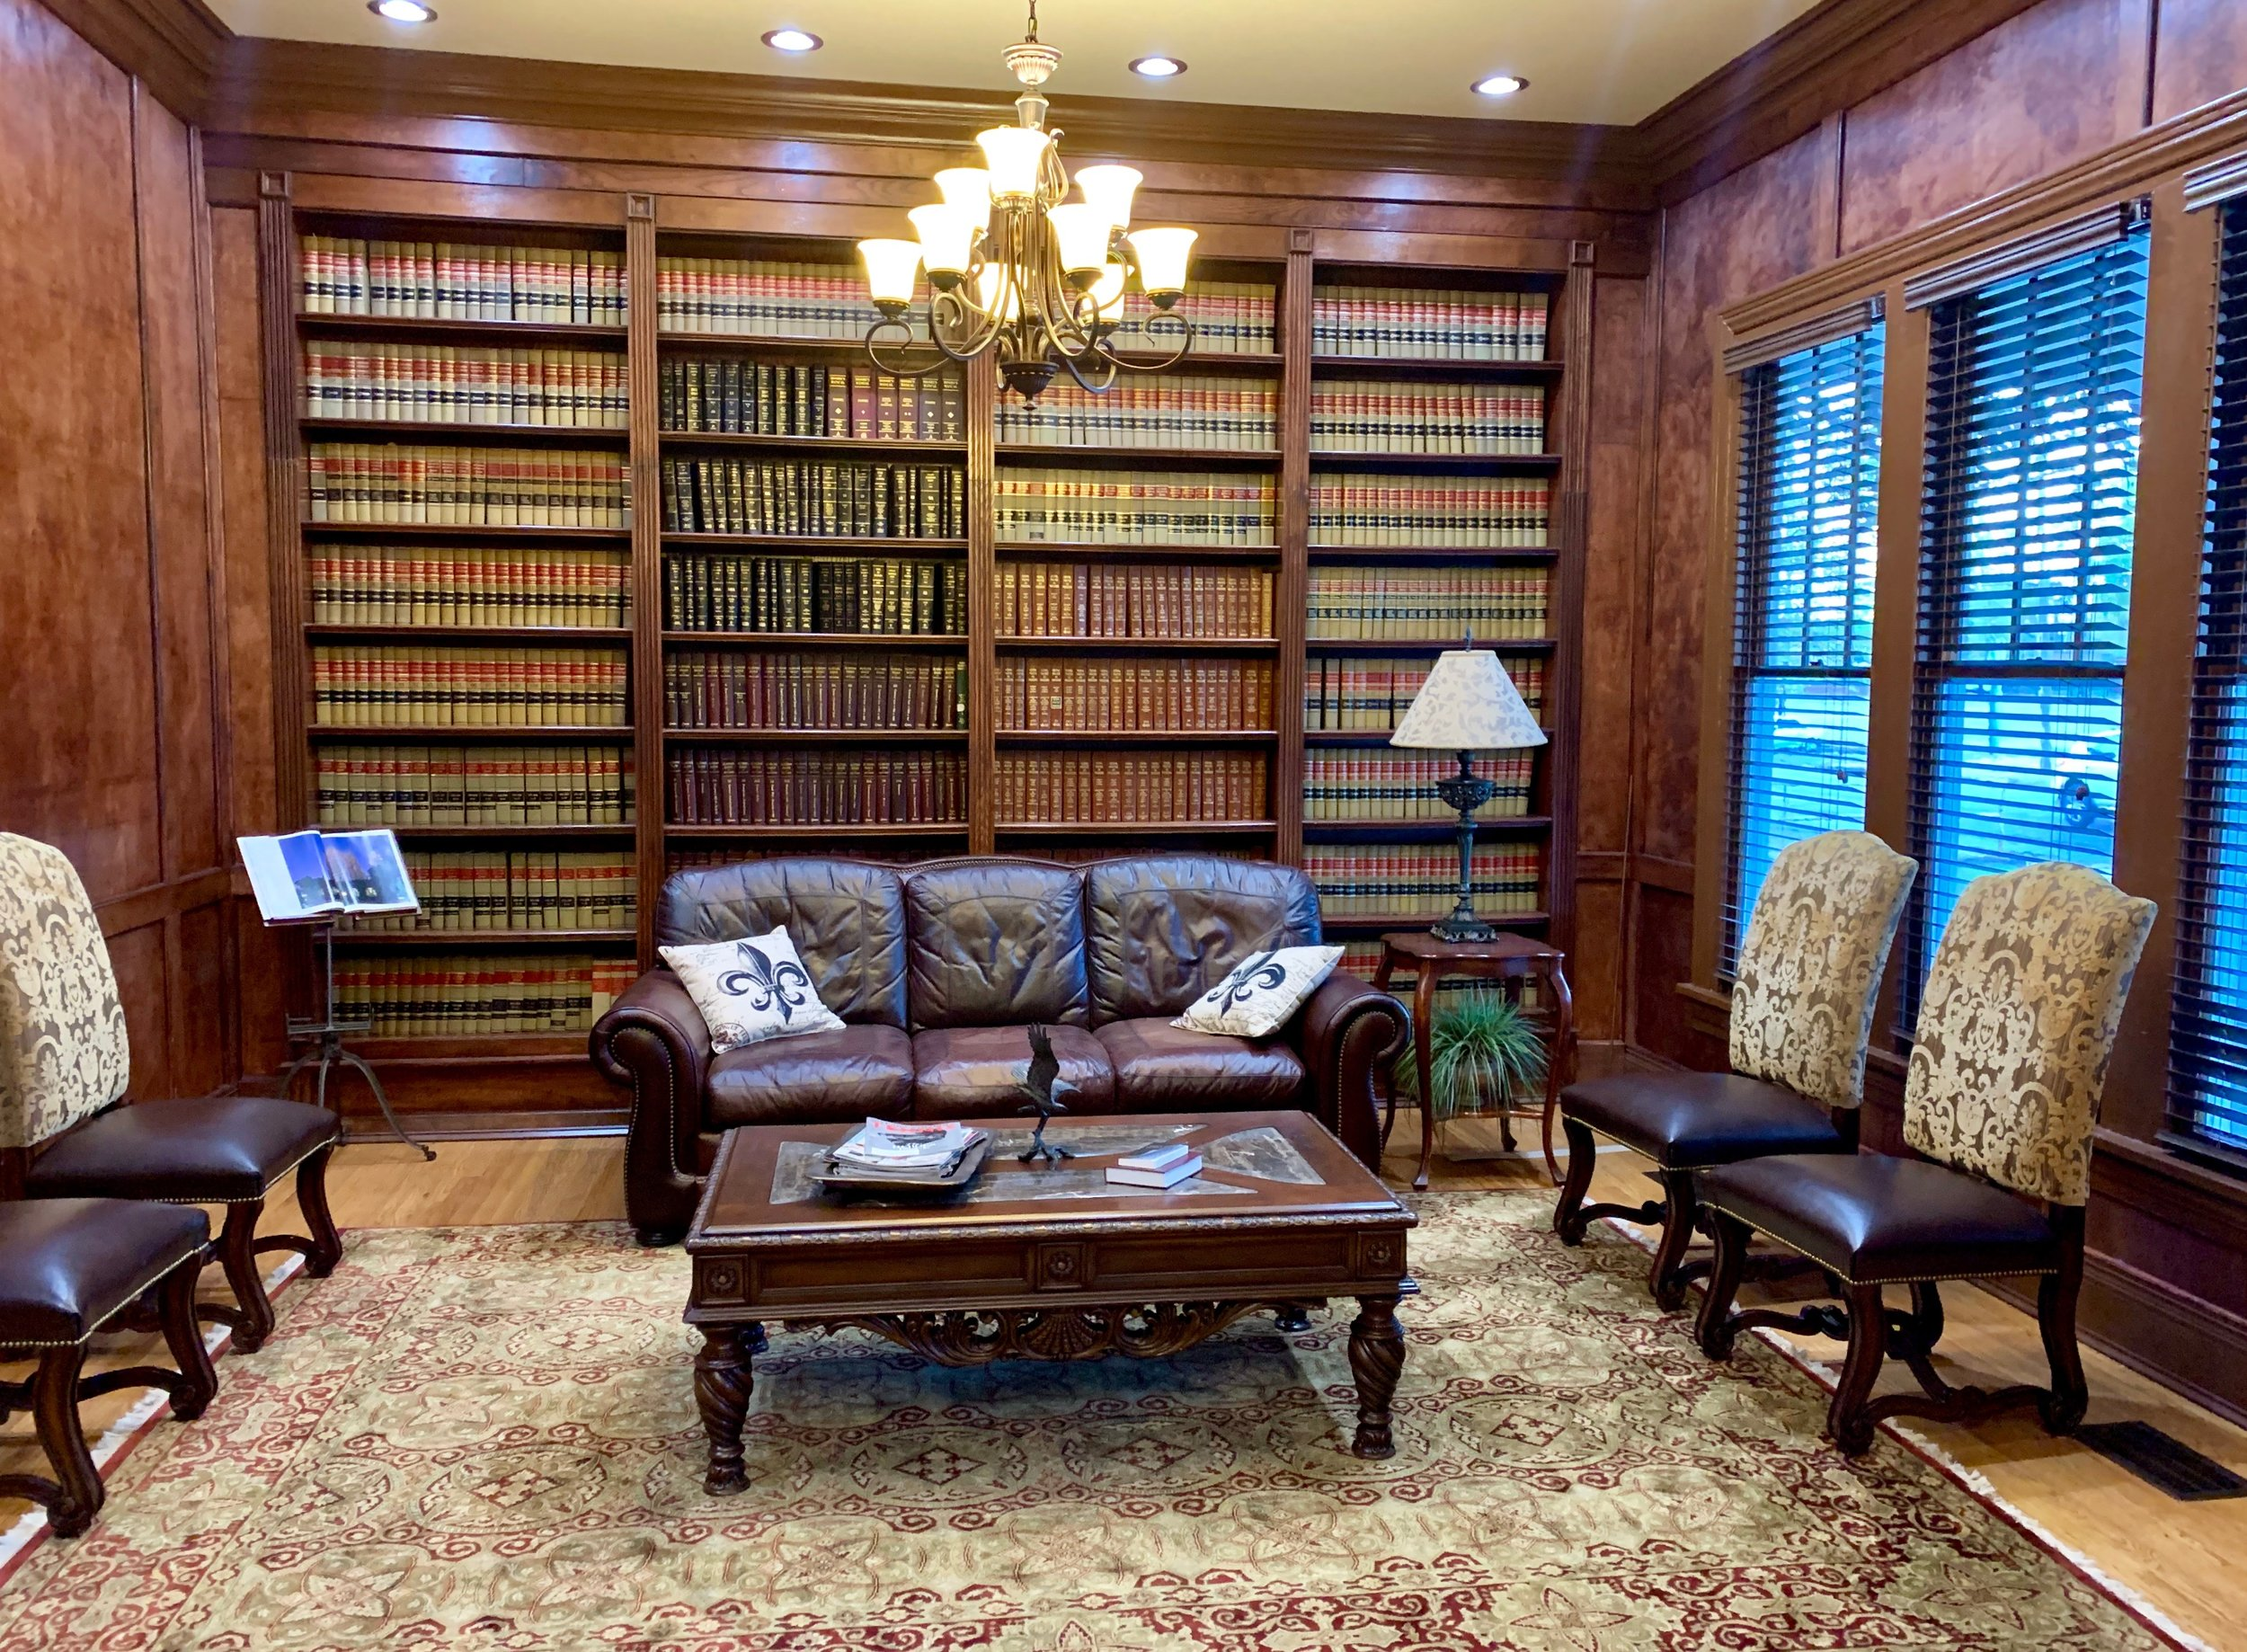 We now have offices in Dothan, AL! - The Dothan offices of the Reid Law Firm bring the care and legal expertise you have come to expect of Reid Law to South Alabama! Click here to be redirected to the website of our Dothan offices.